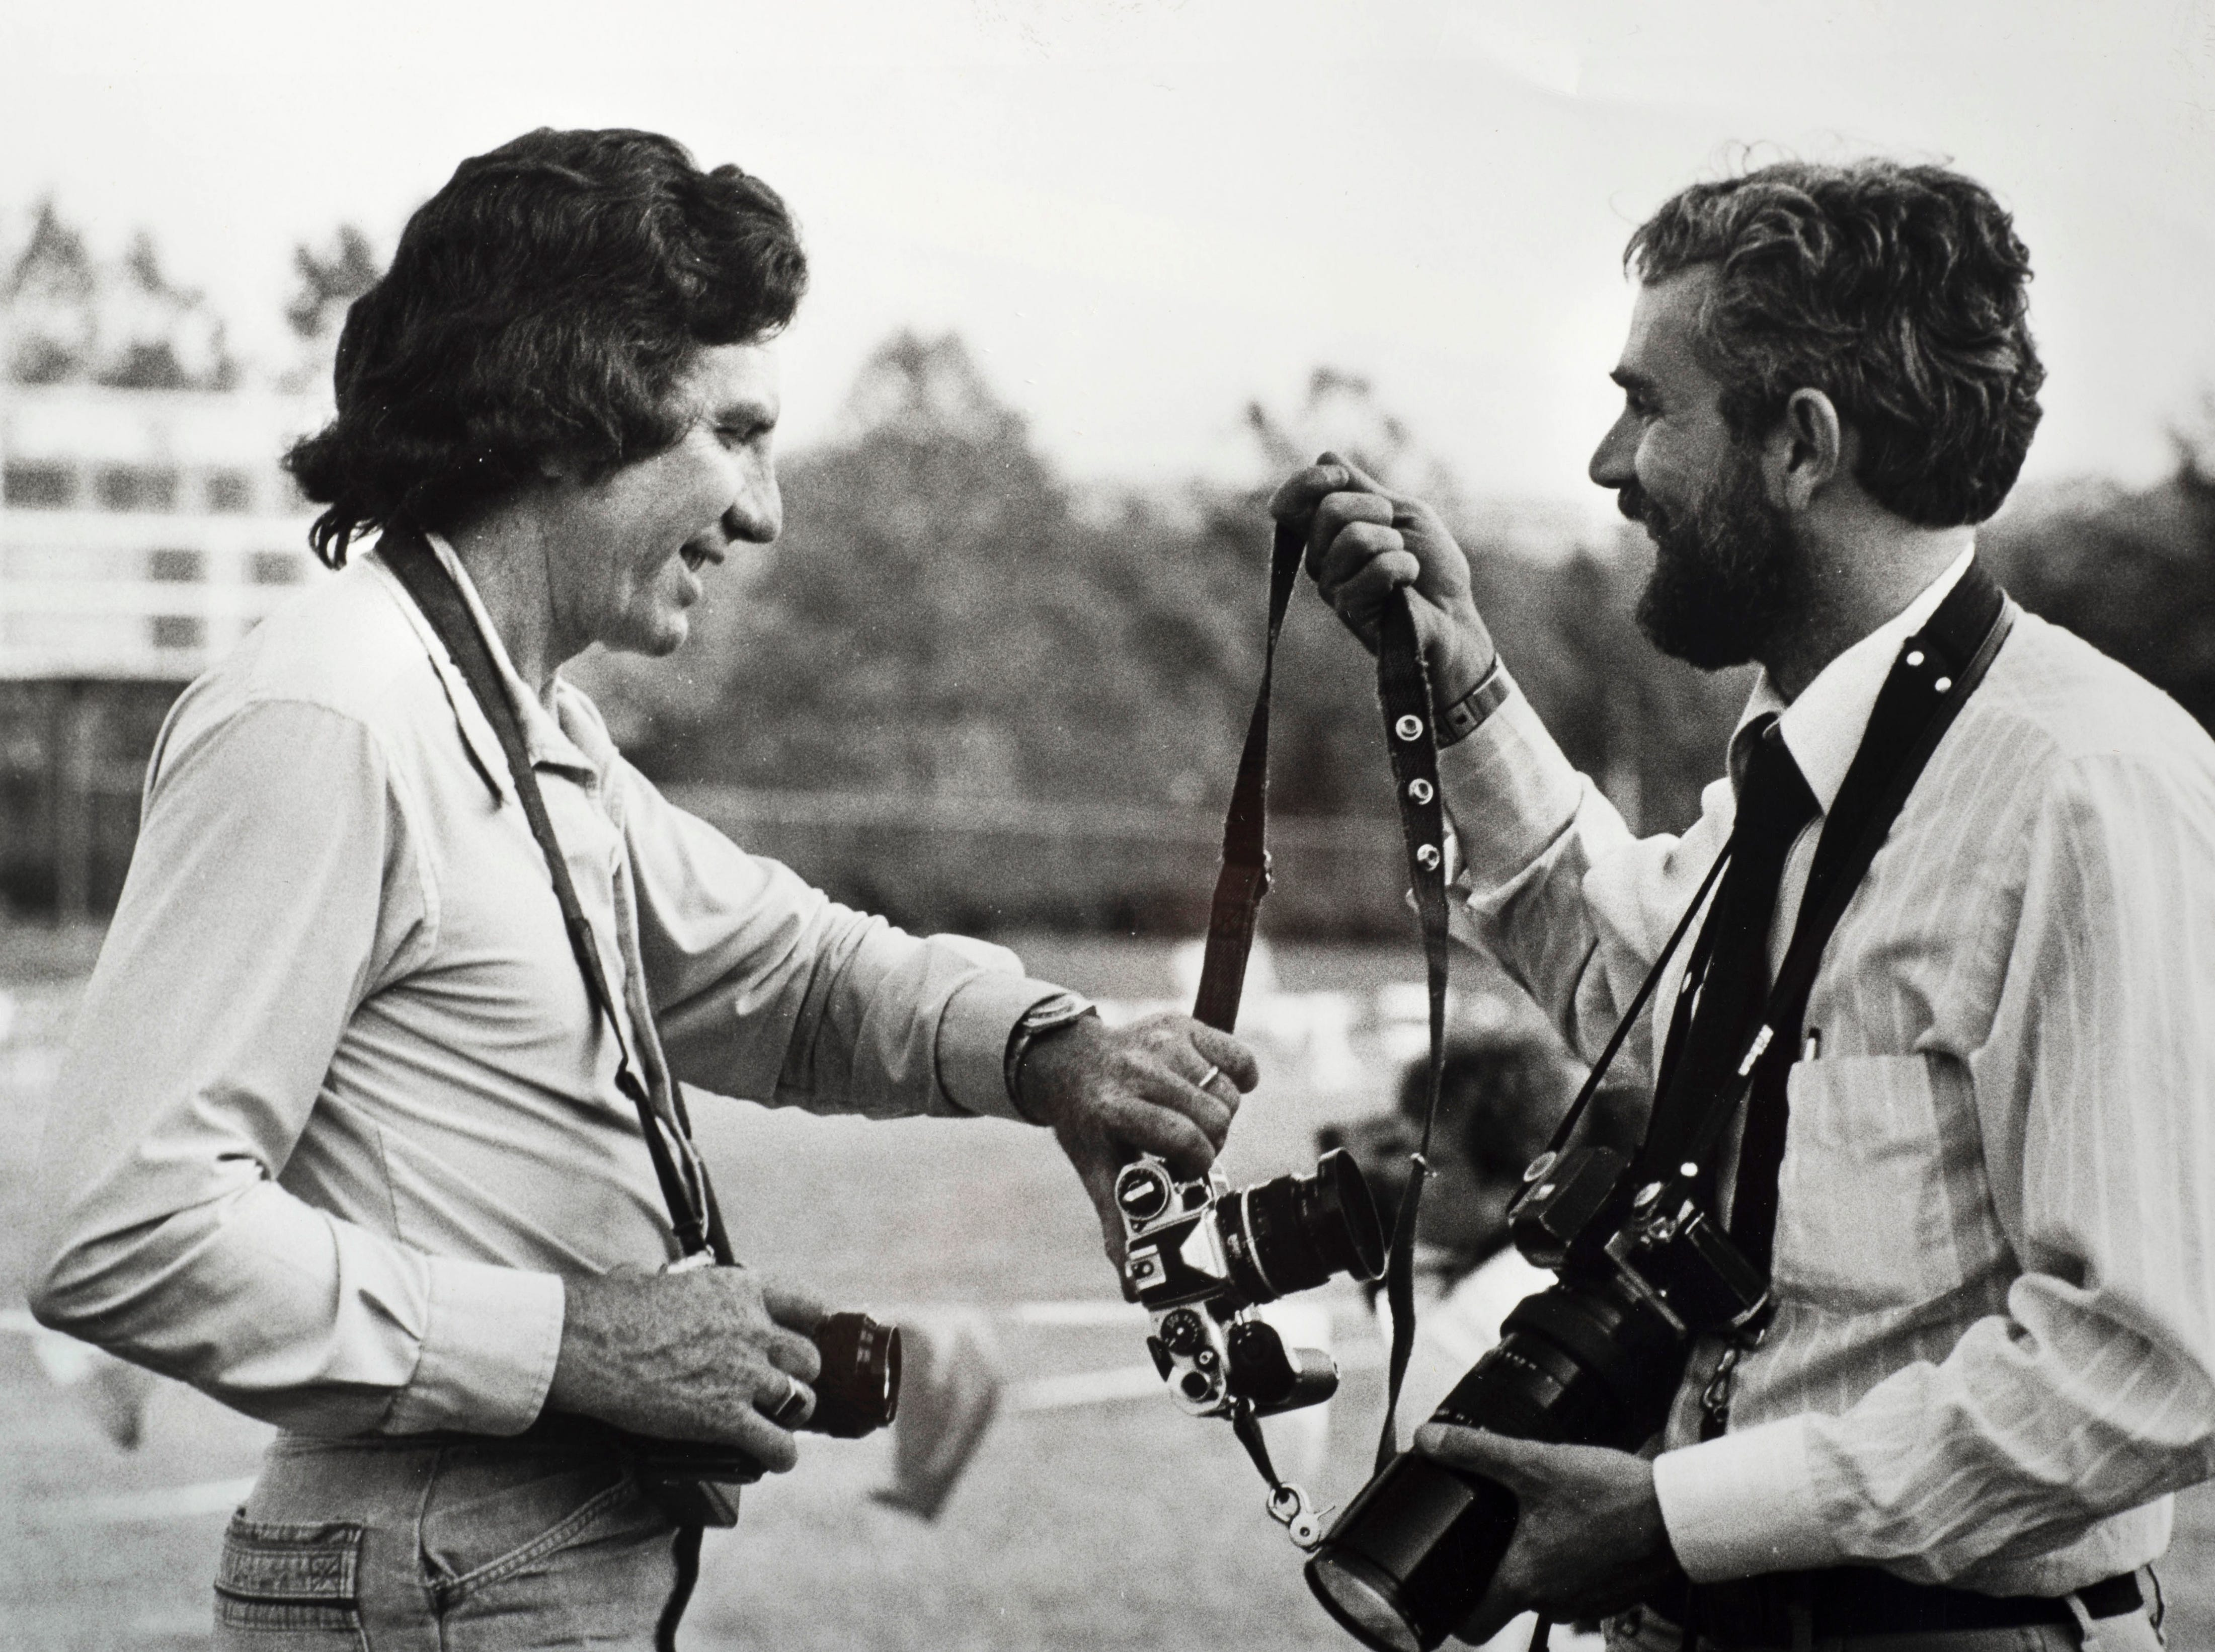 News Sentinel staff photographers Jack Kirkland, left, and J. Miles Cary are pictured circa 1979.